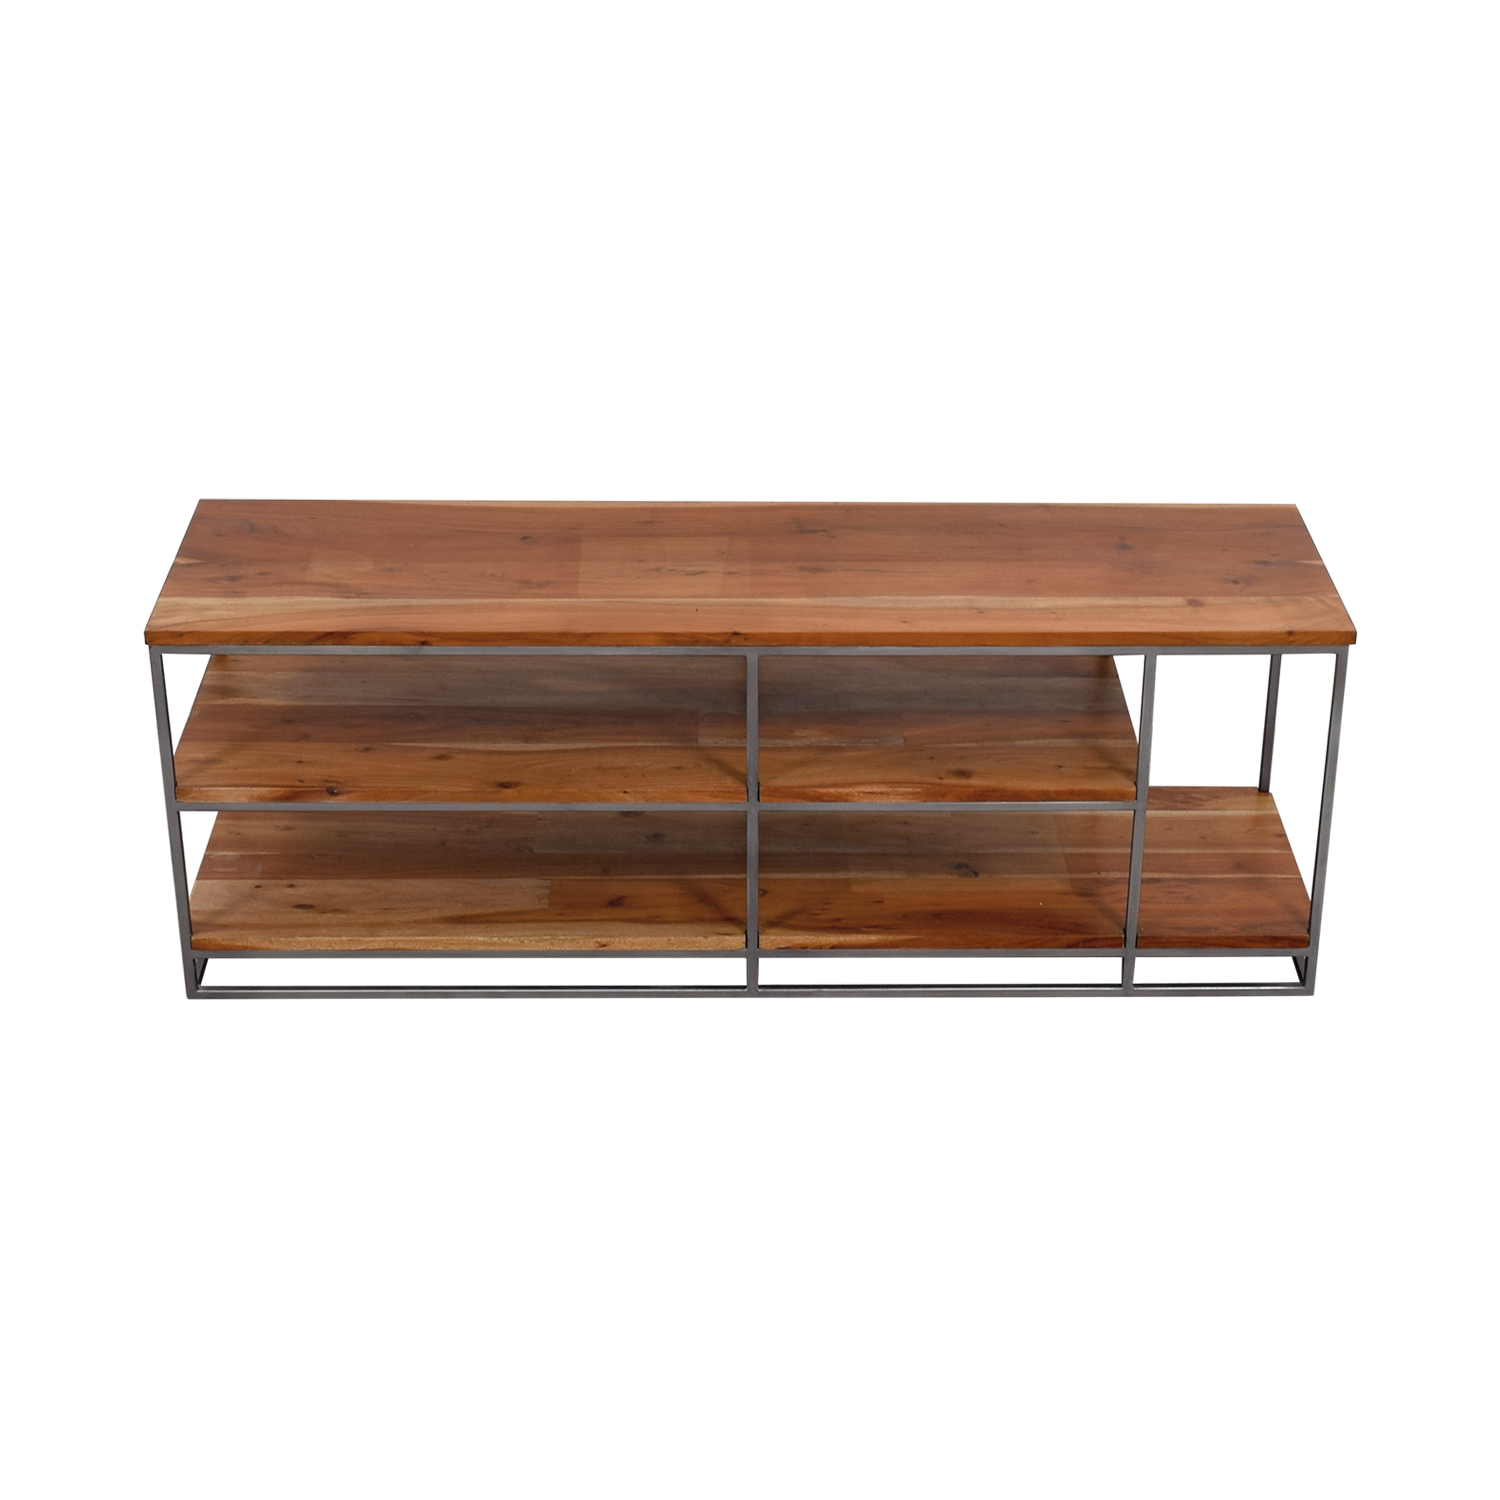 shop CB2 CB2 Wood and Chrome Credenza online